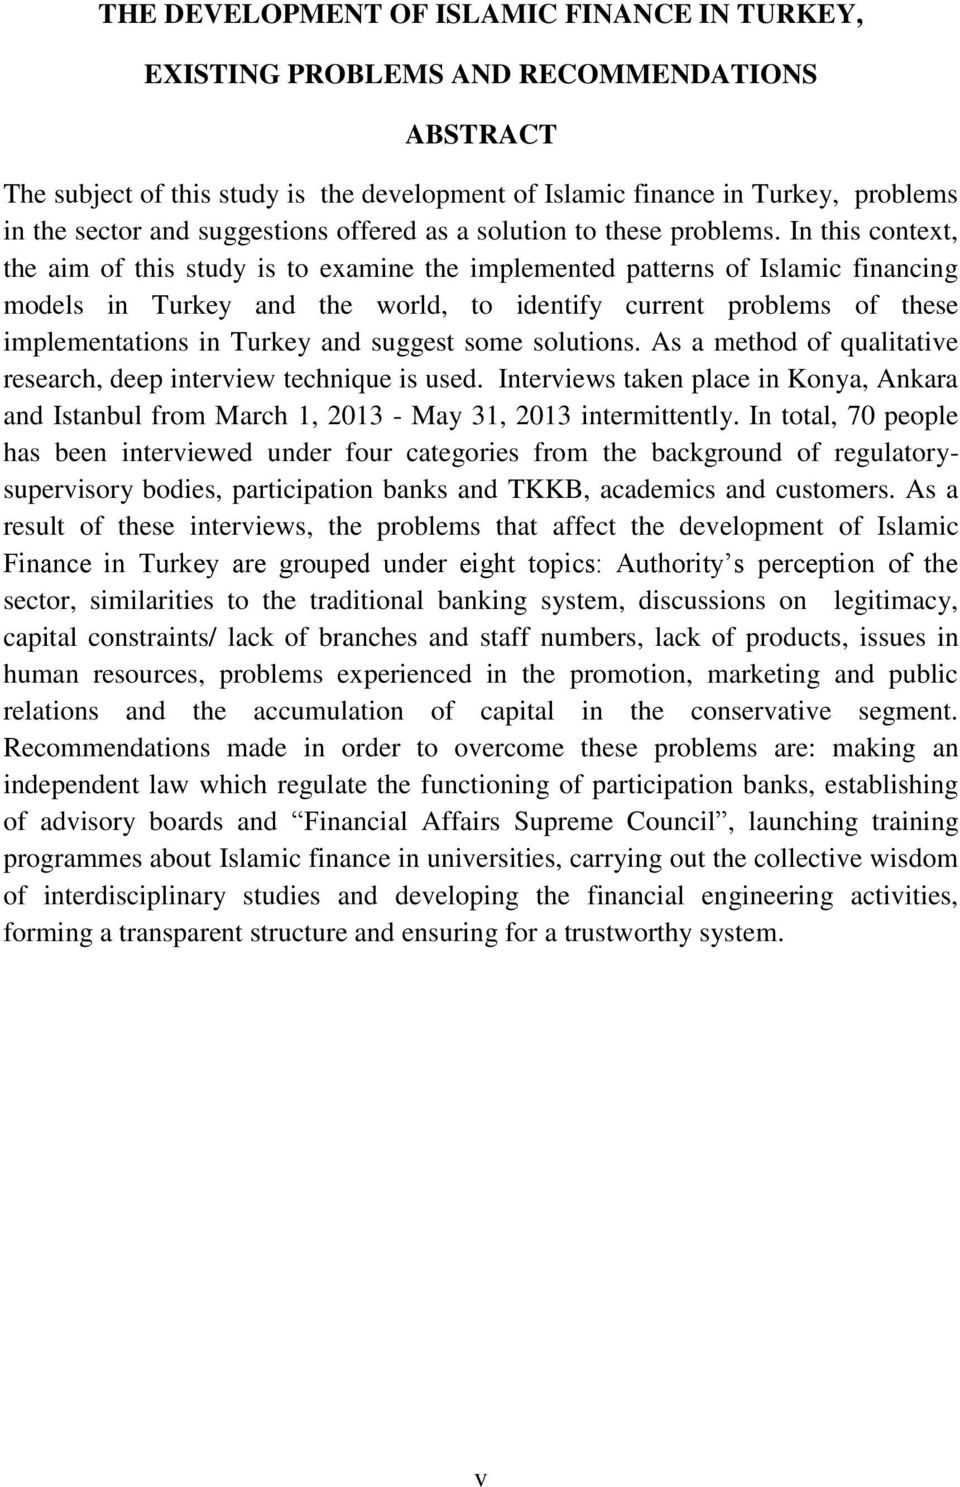 In this context, the aim of this study is to examine the implemented patterns of Islamic financing models in Turkey and the world, to identify current problems of these implementations in Turkey and